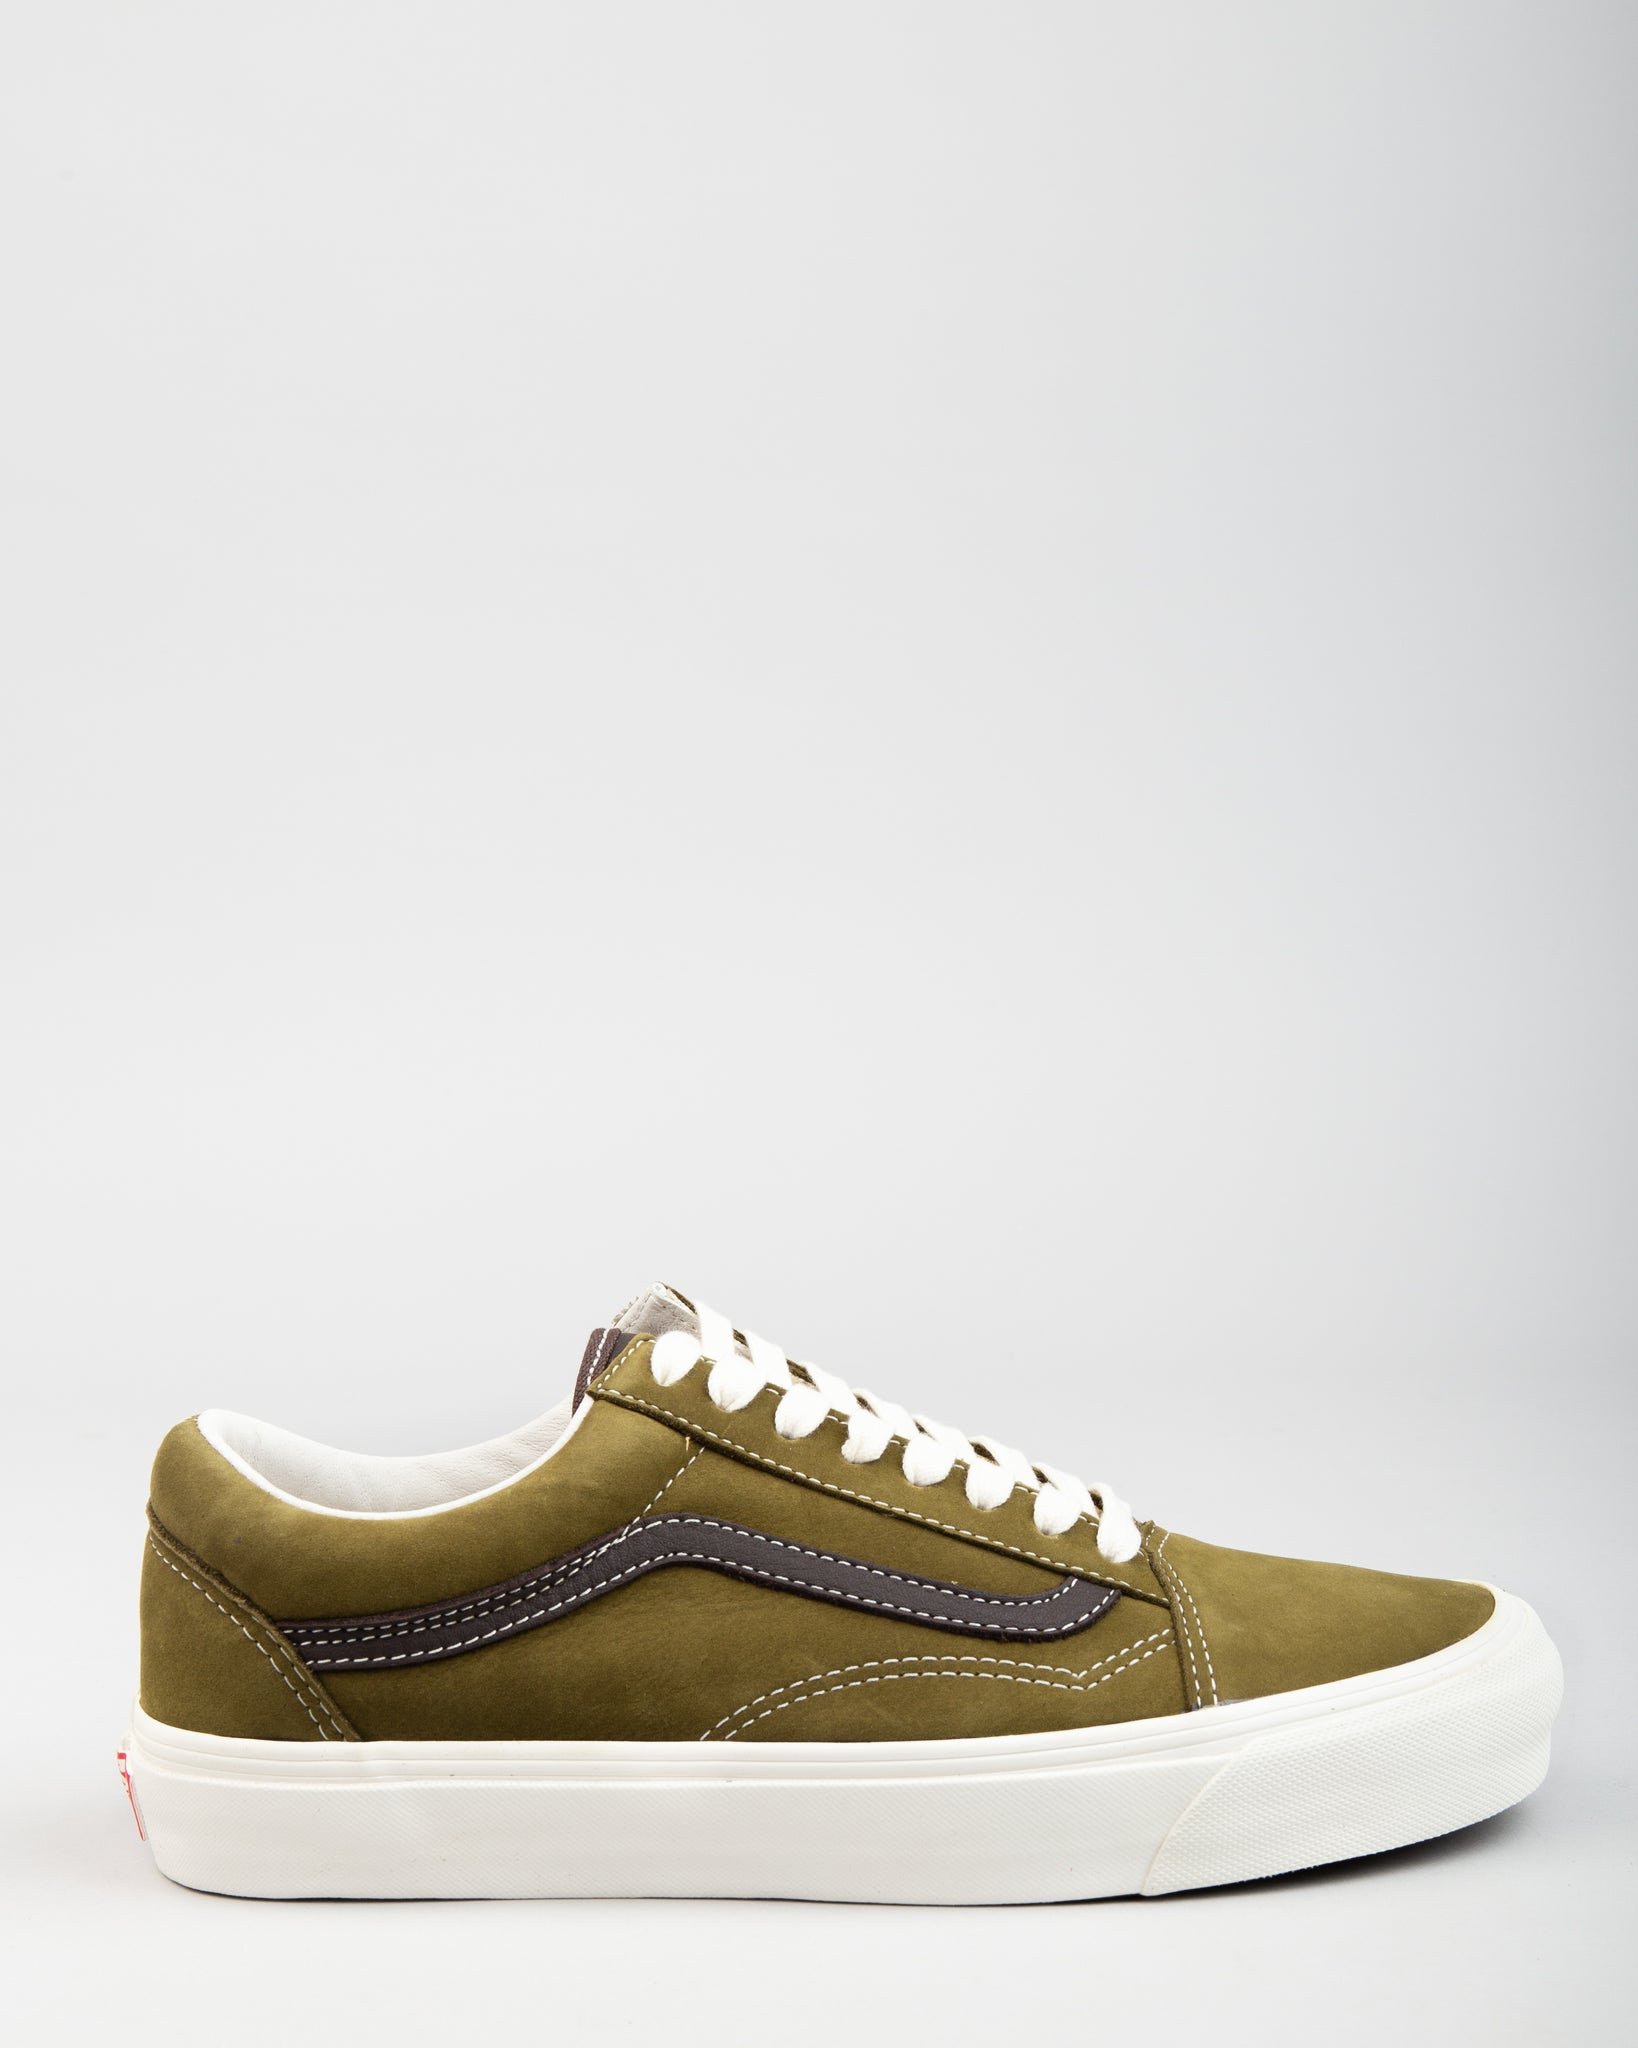 OG Old Skool LX Raven/Black